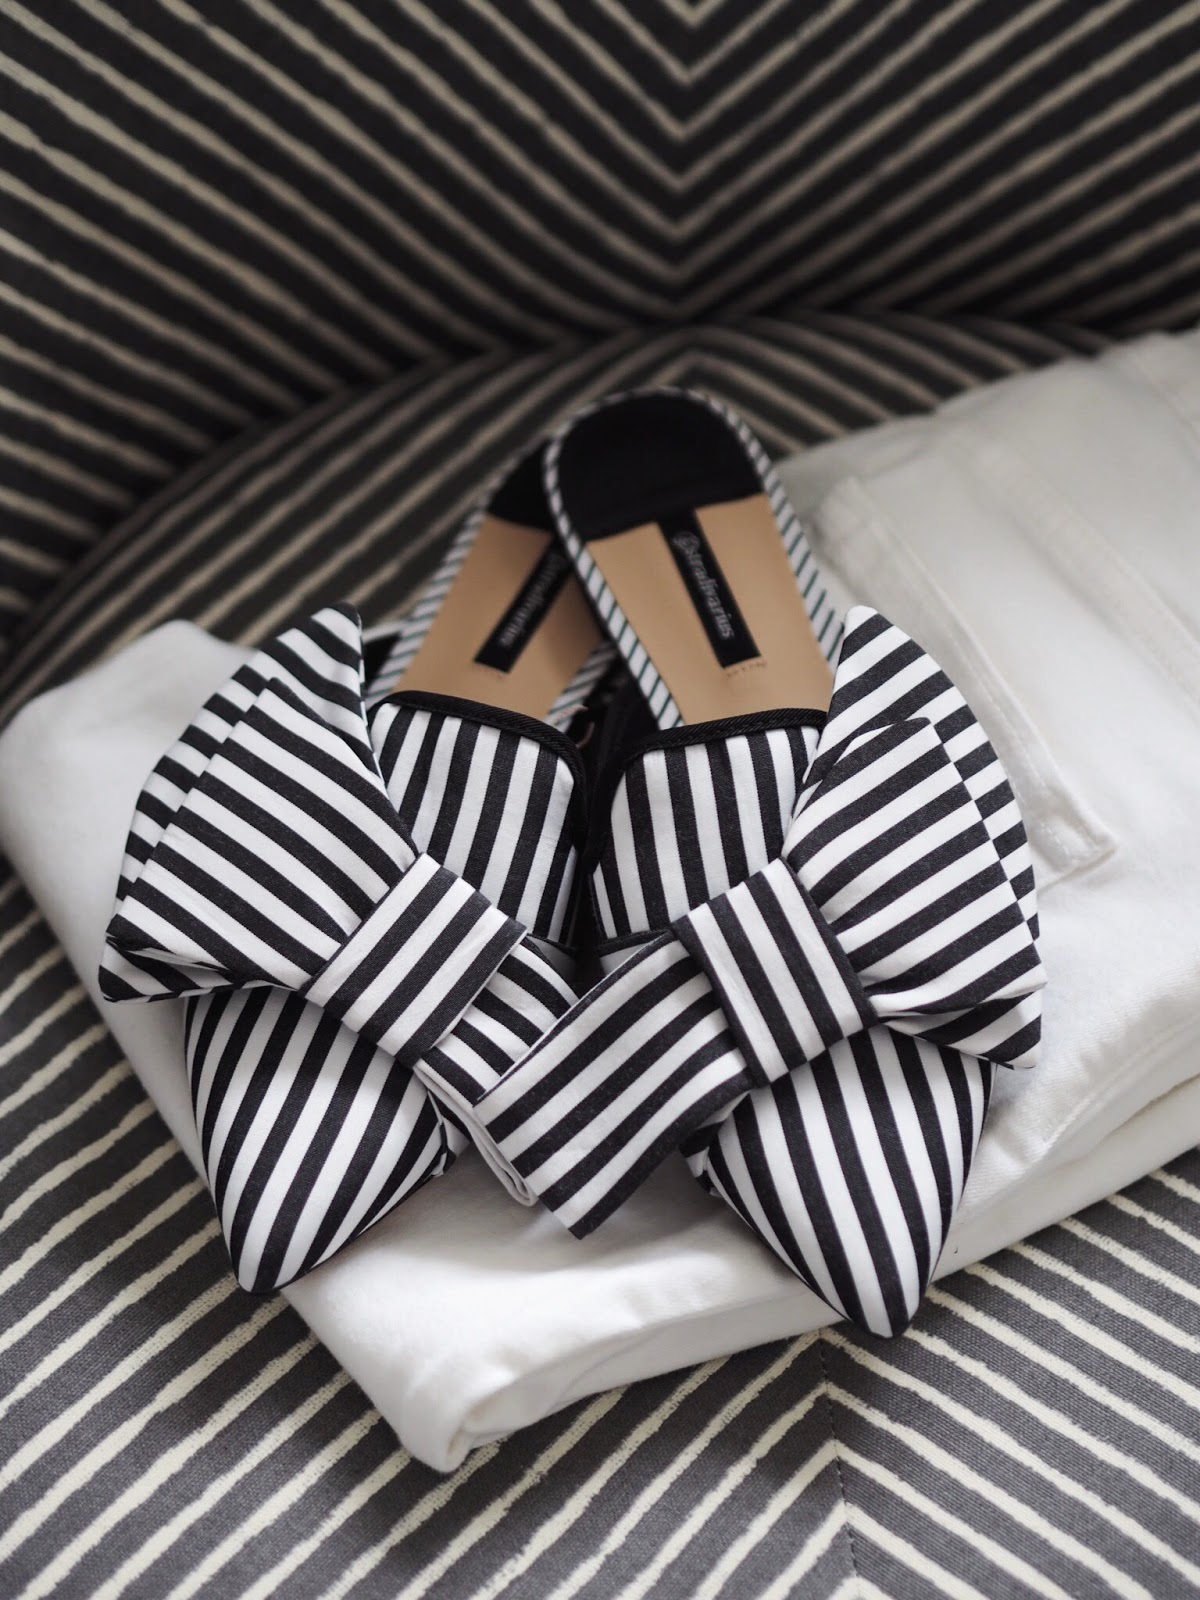 Striped Mules on top of white jeans on striped chair with contrasting stripes